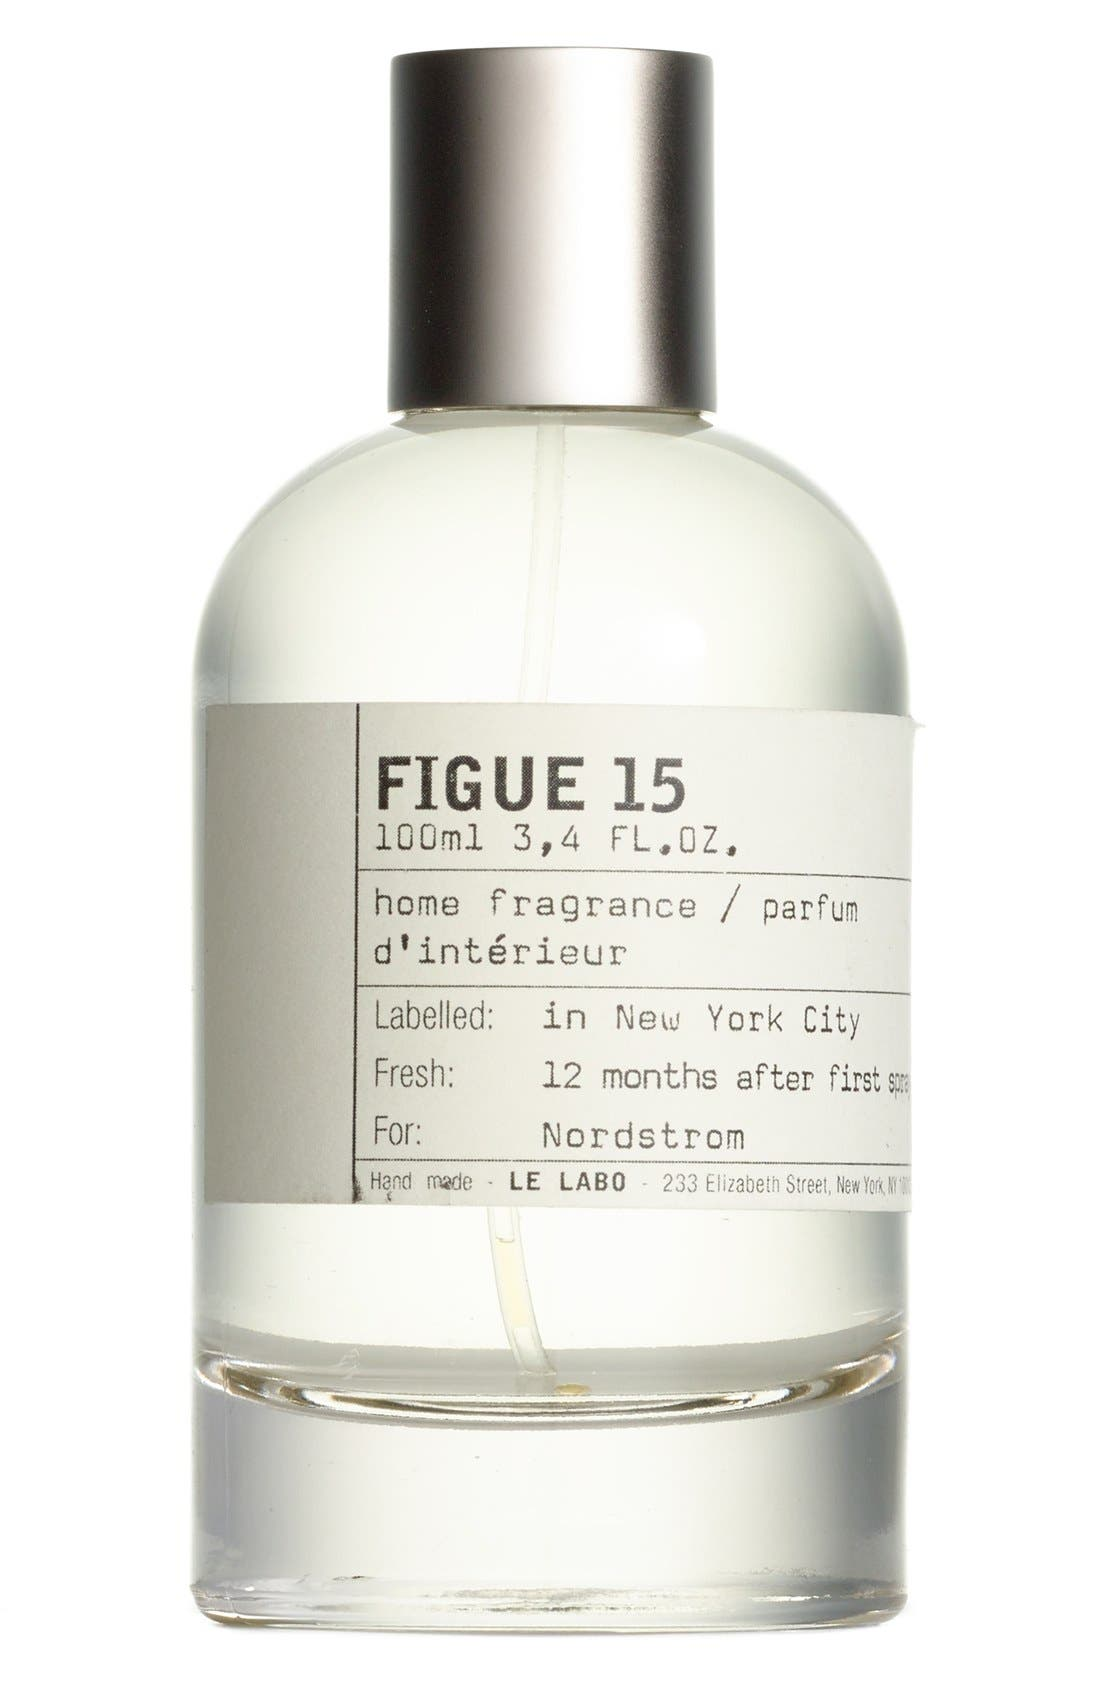 Alternate Image 1 Selected - Le Labo 'Figue 15' Home Fragrance Spray